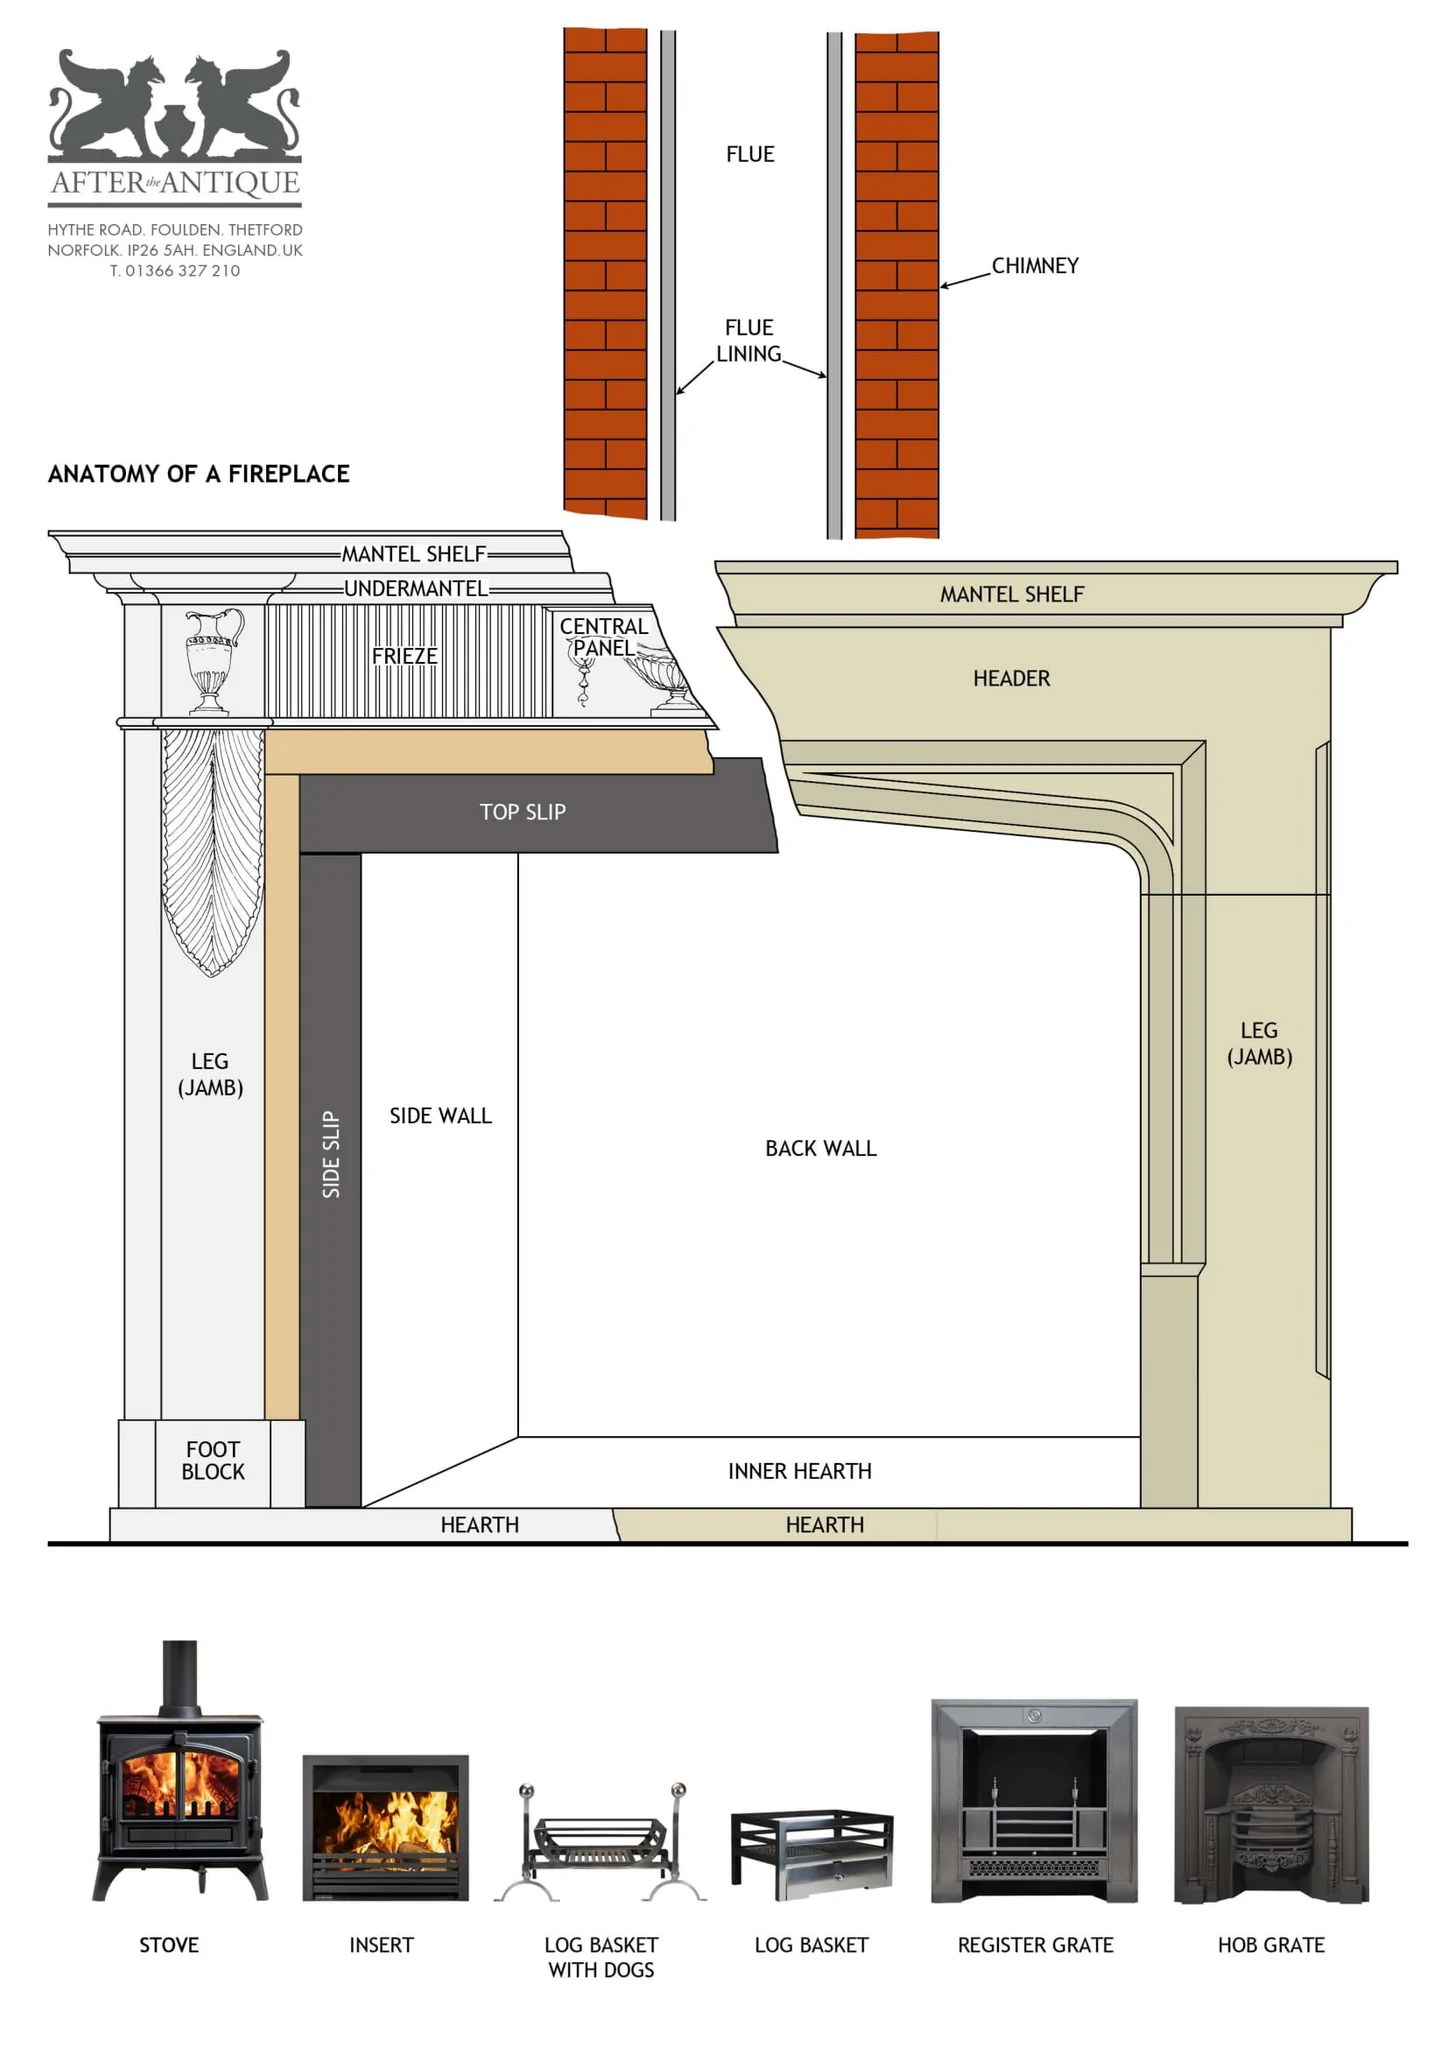 medium resolution of anatomy of a fireplace download